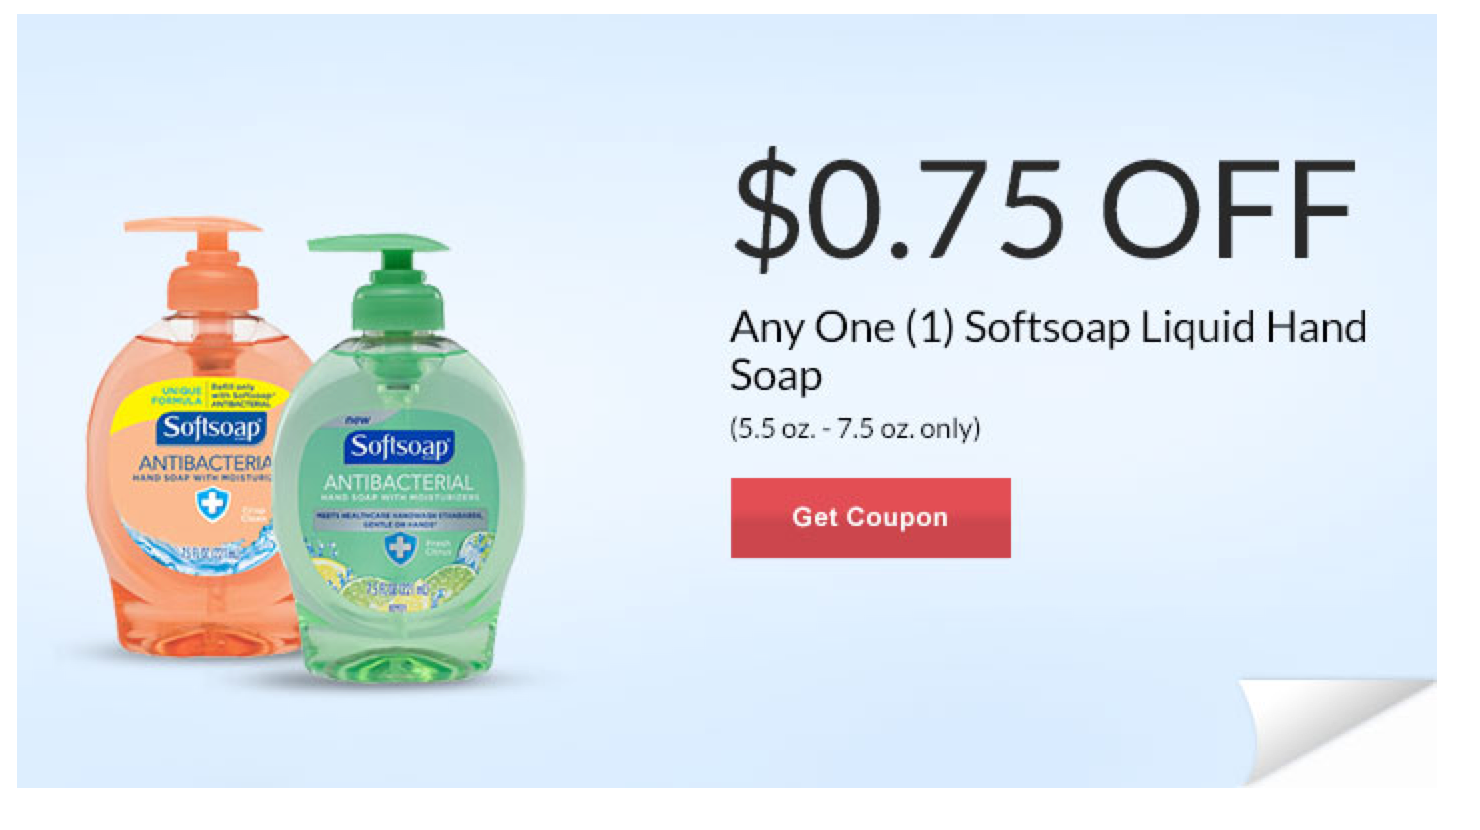 Soap.com coupon code